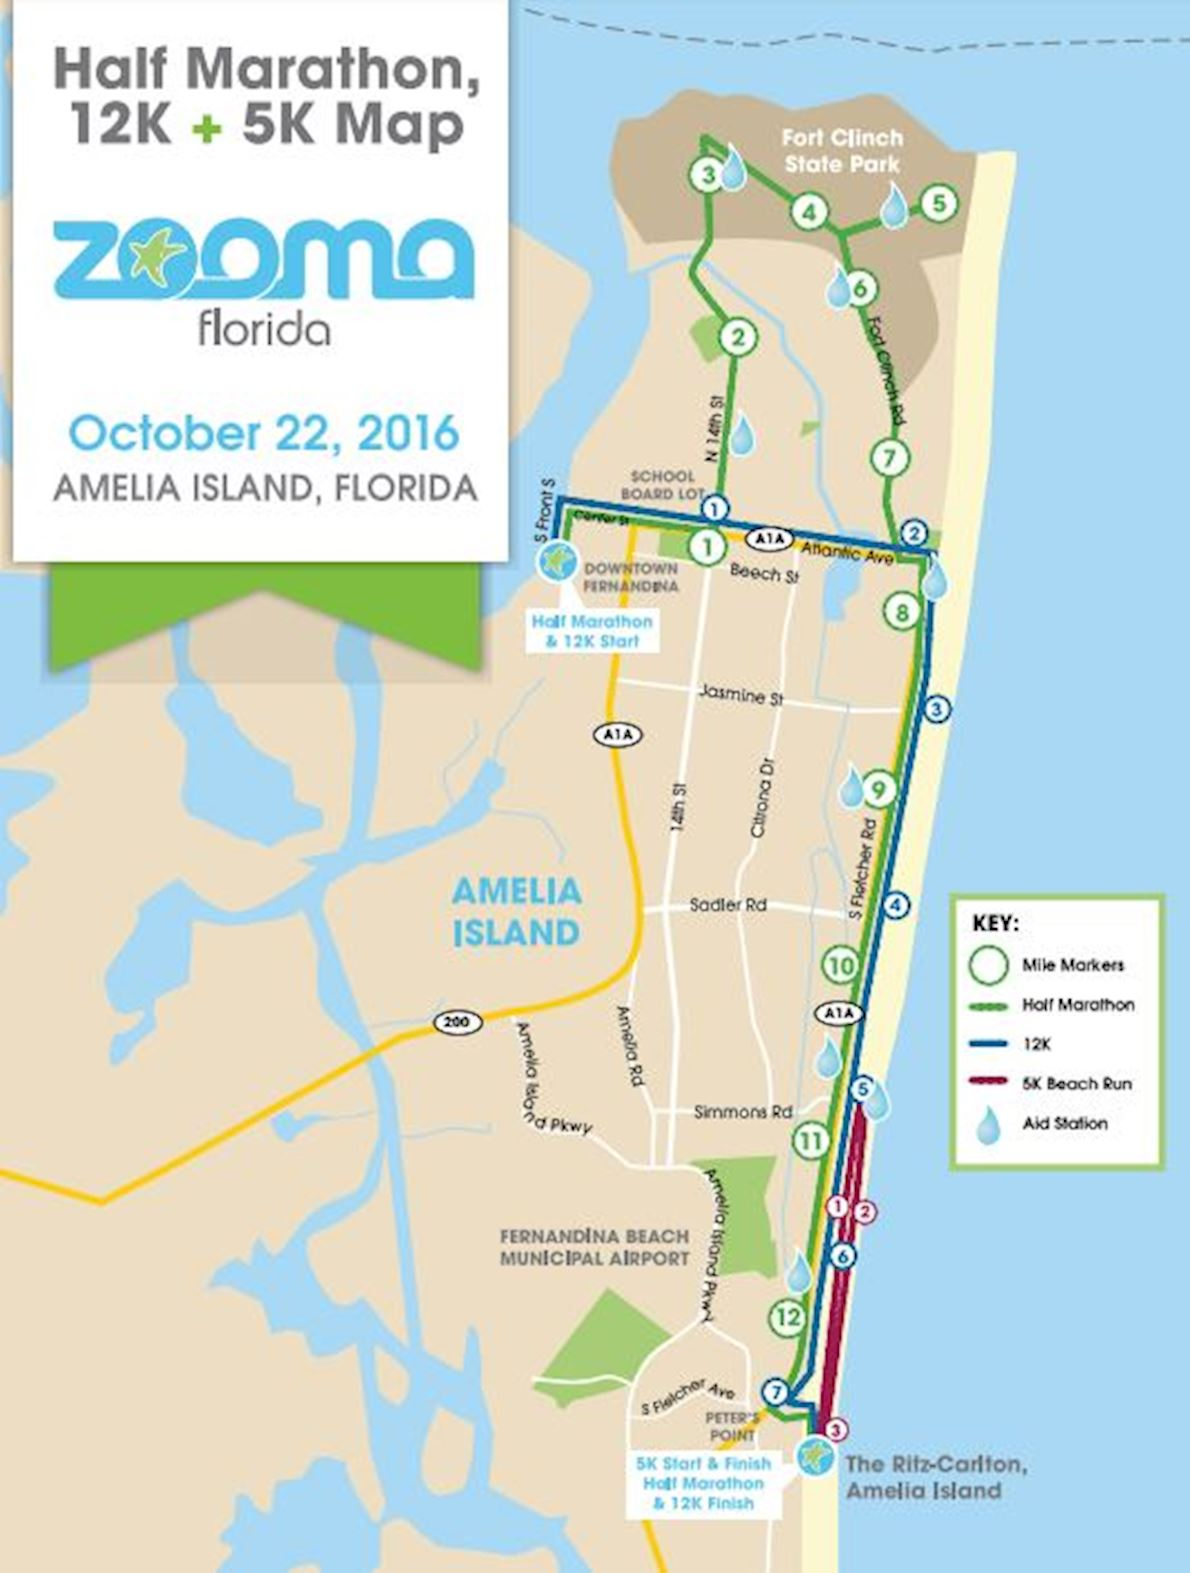 Zooma Florida Amelia Island Route Map